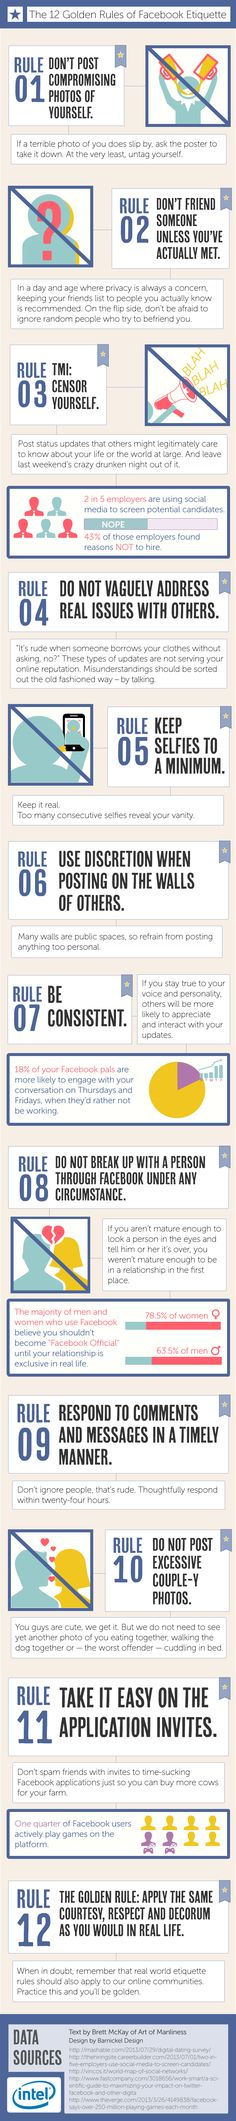 12 Rules of Facebook Etiquette by Intel http://communitymanagerfreelance.it/blog/community-manager-personal-branding-2/